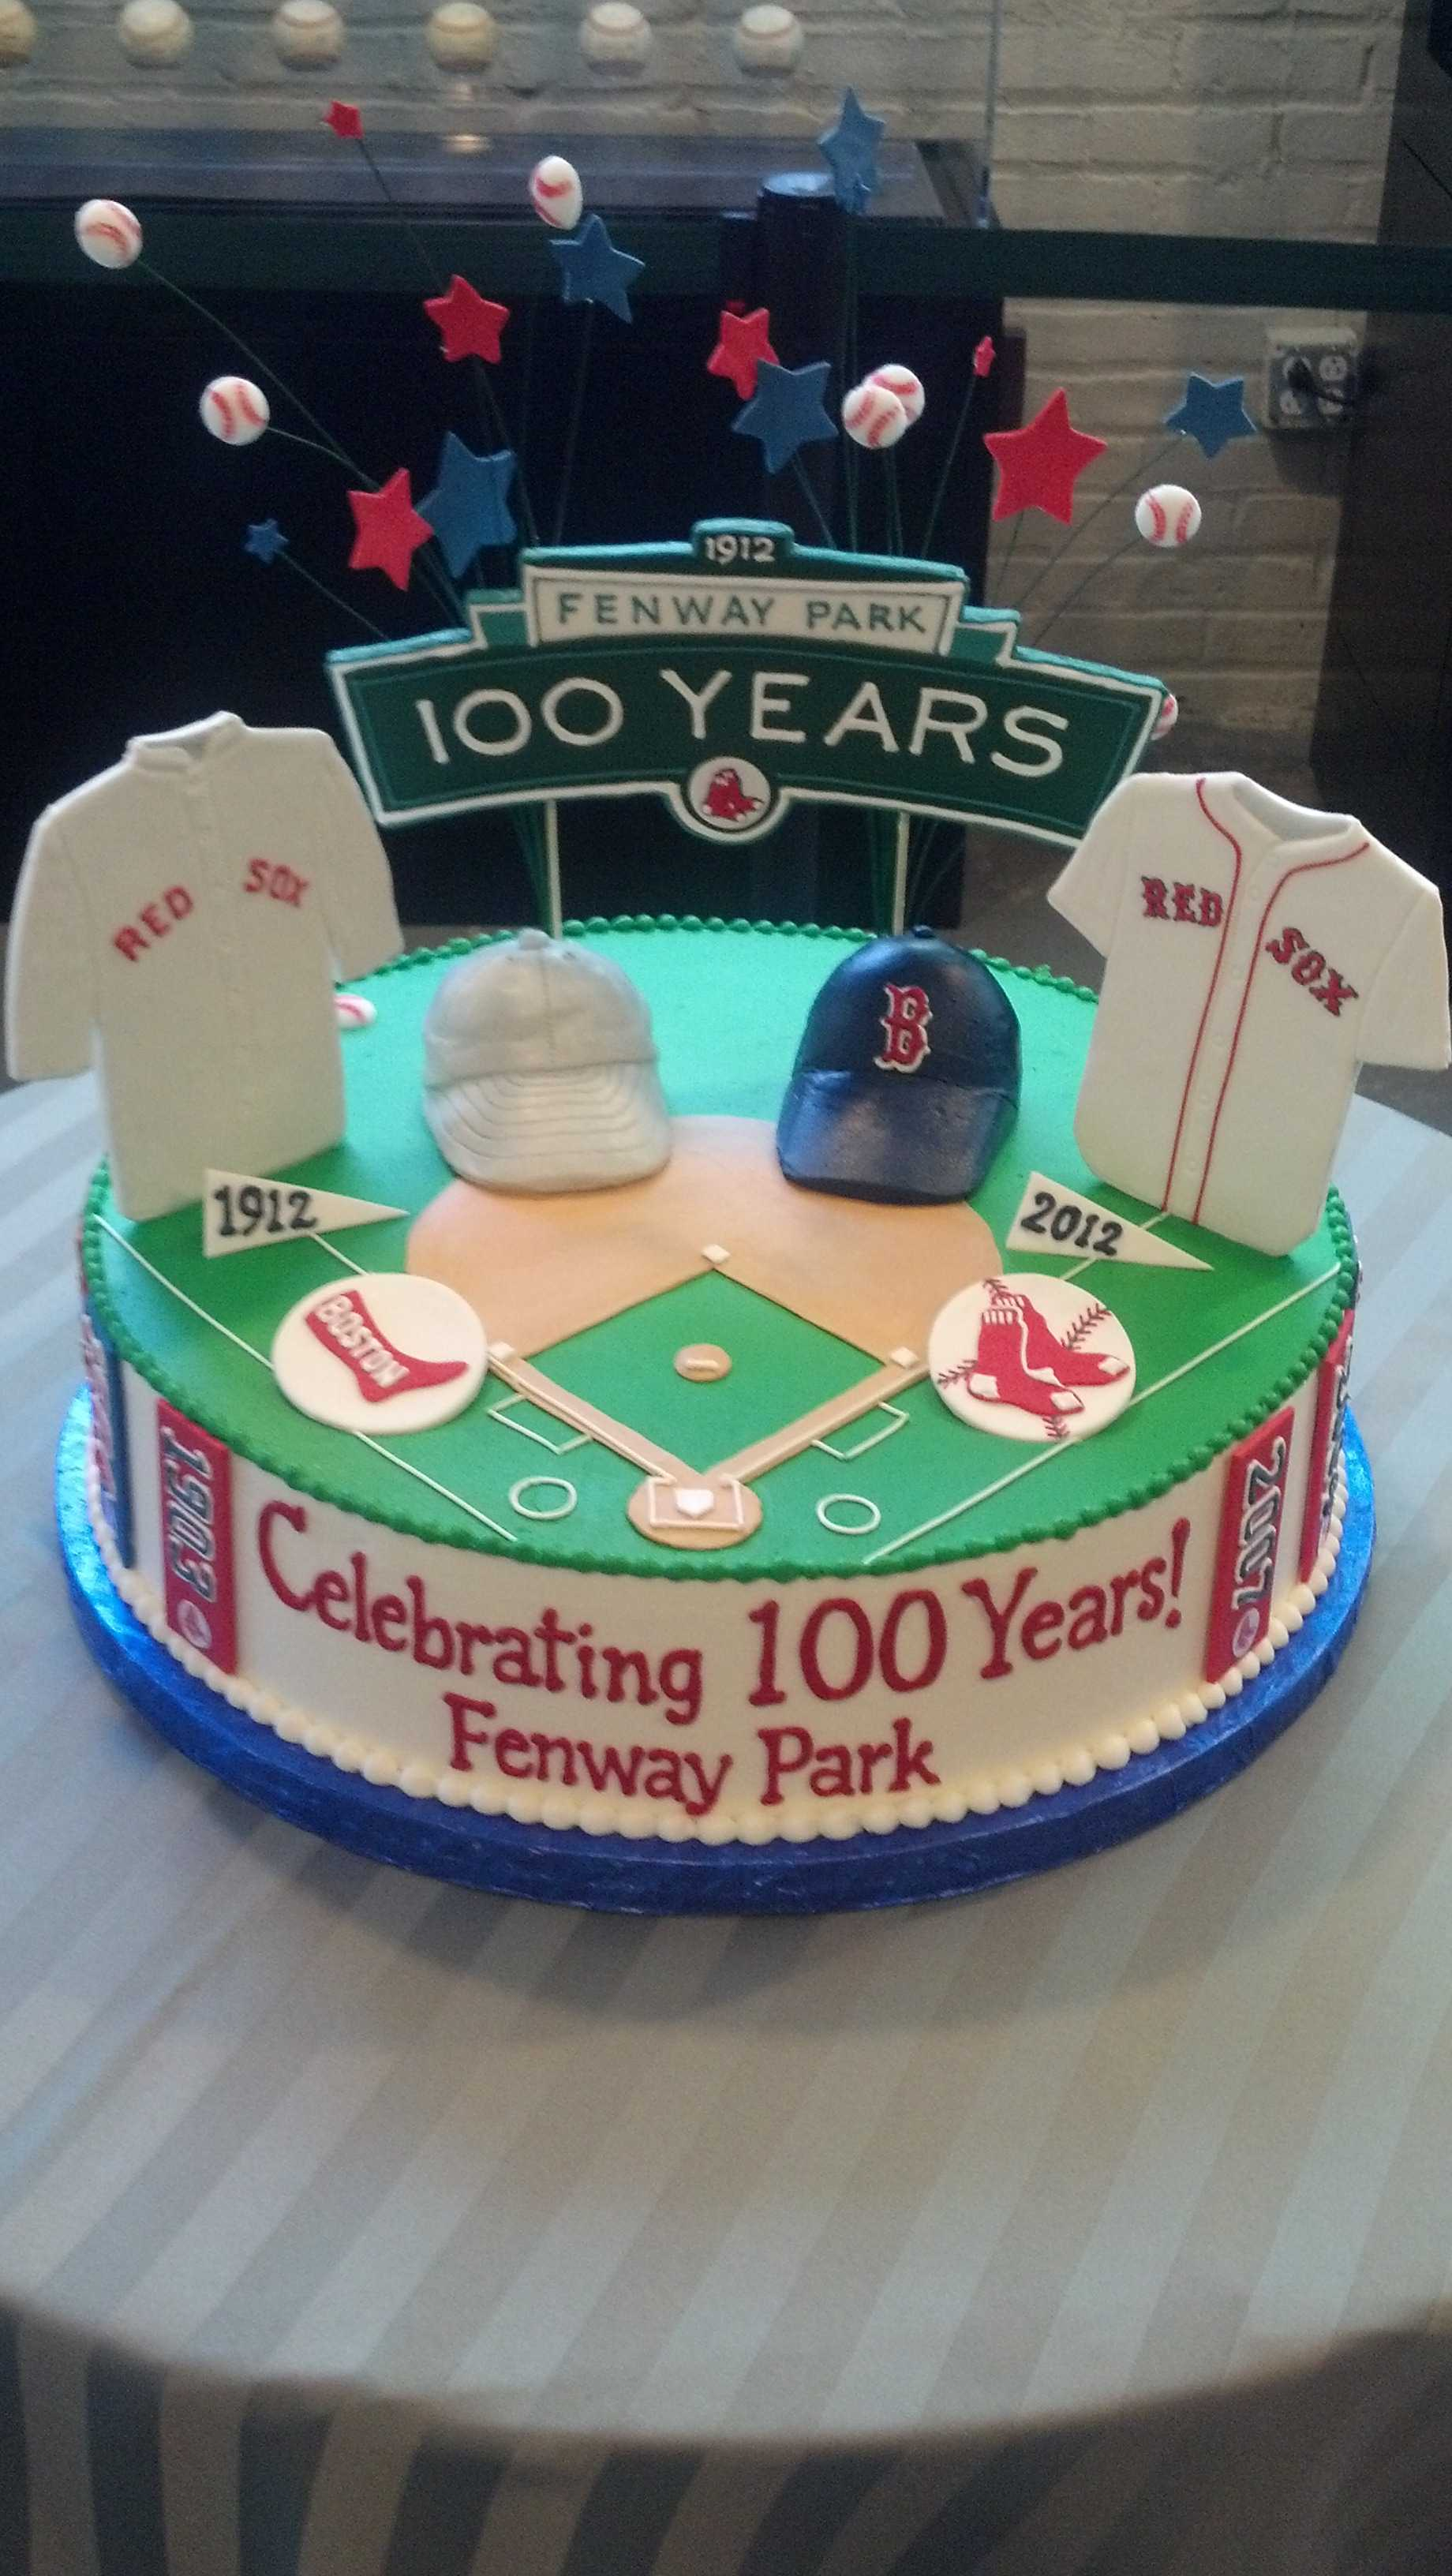 red sox cake